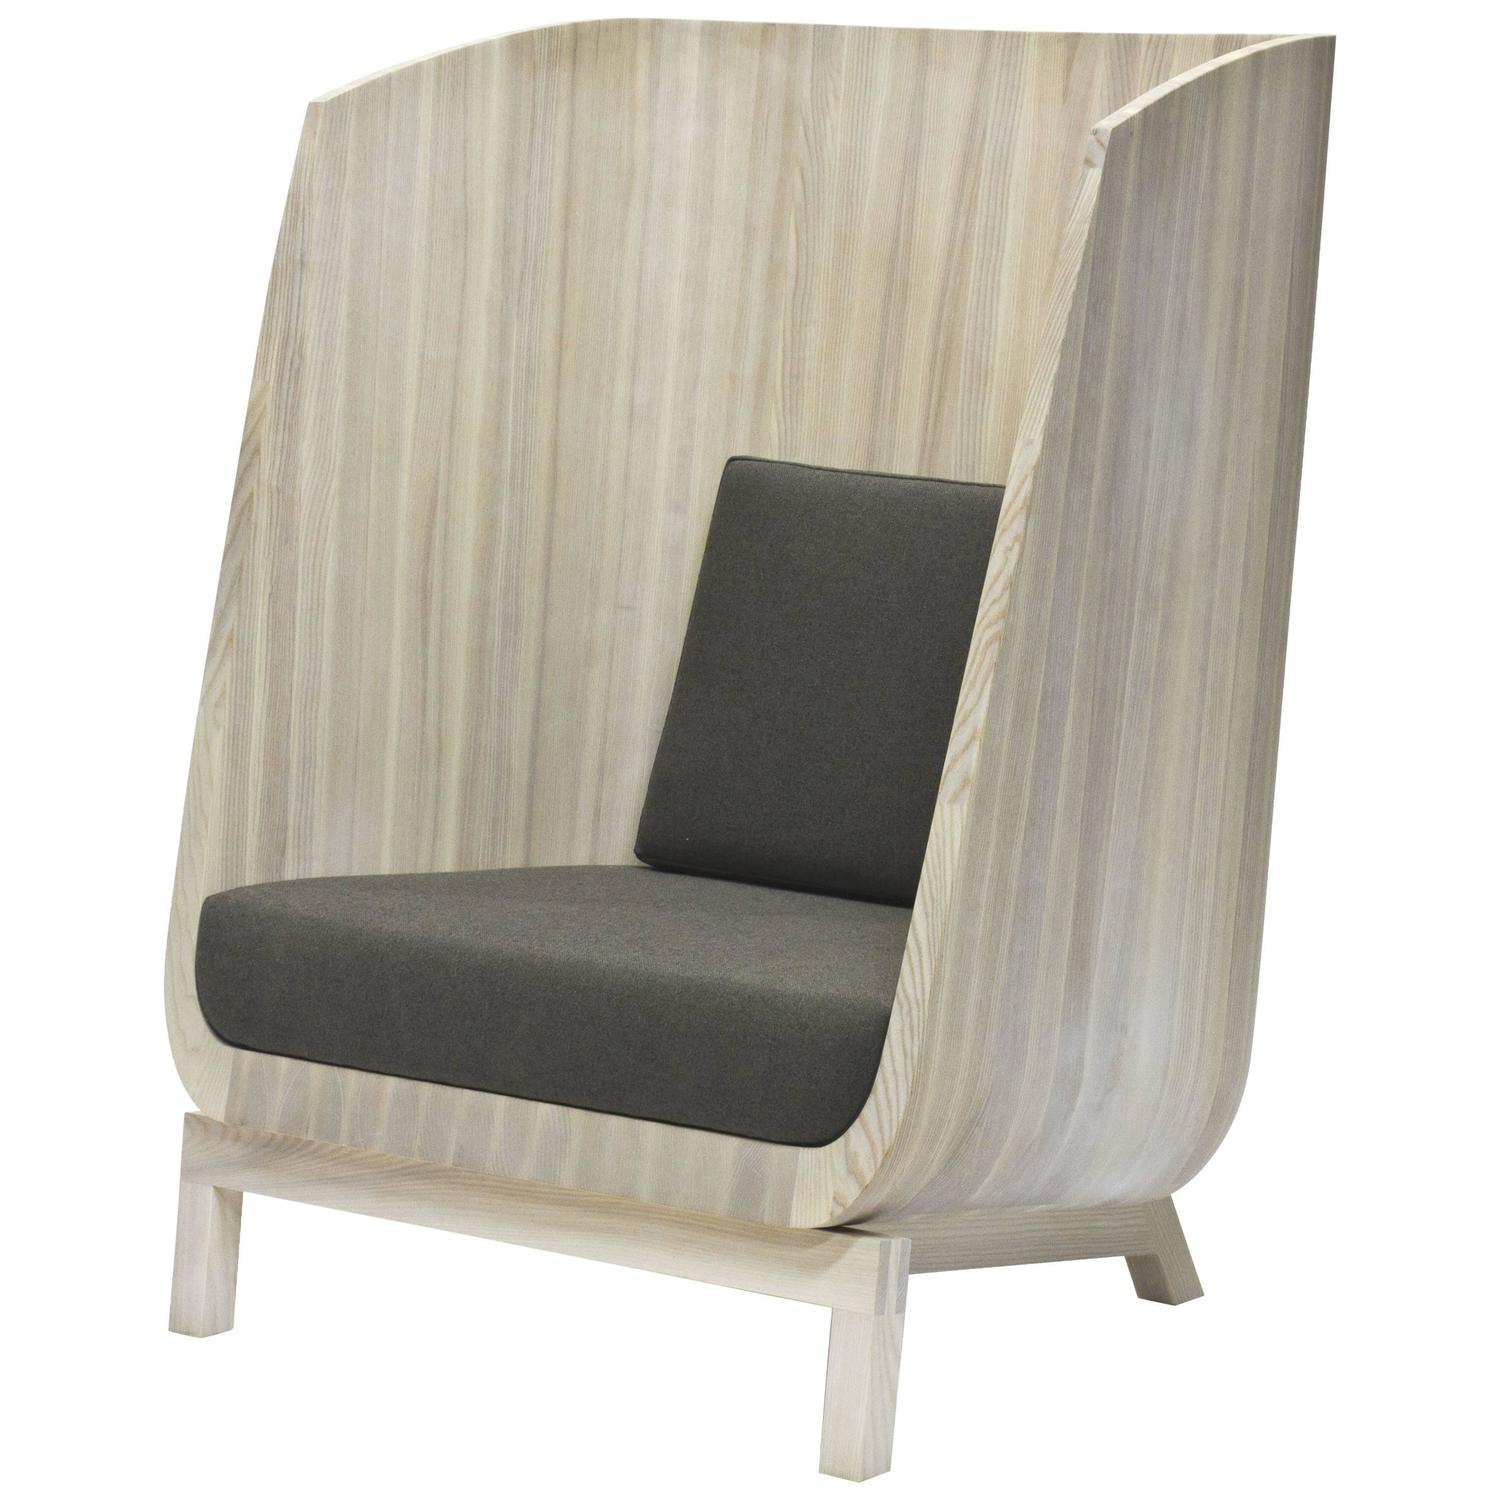 Husk Privacy Chair in Solid Ash by Laura Mays for Wooda - Antique And Vintage Wingback Chairs - 830 For Sale At 1stdibs